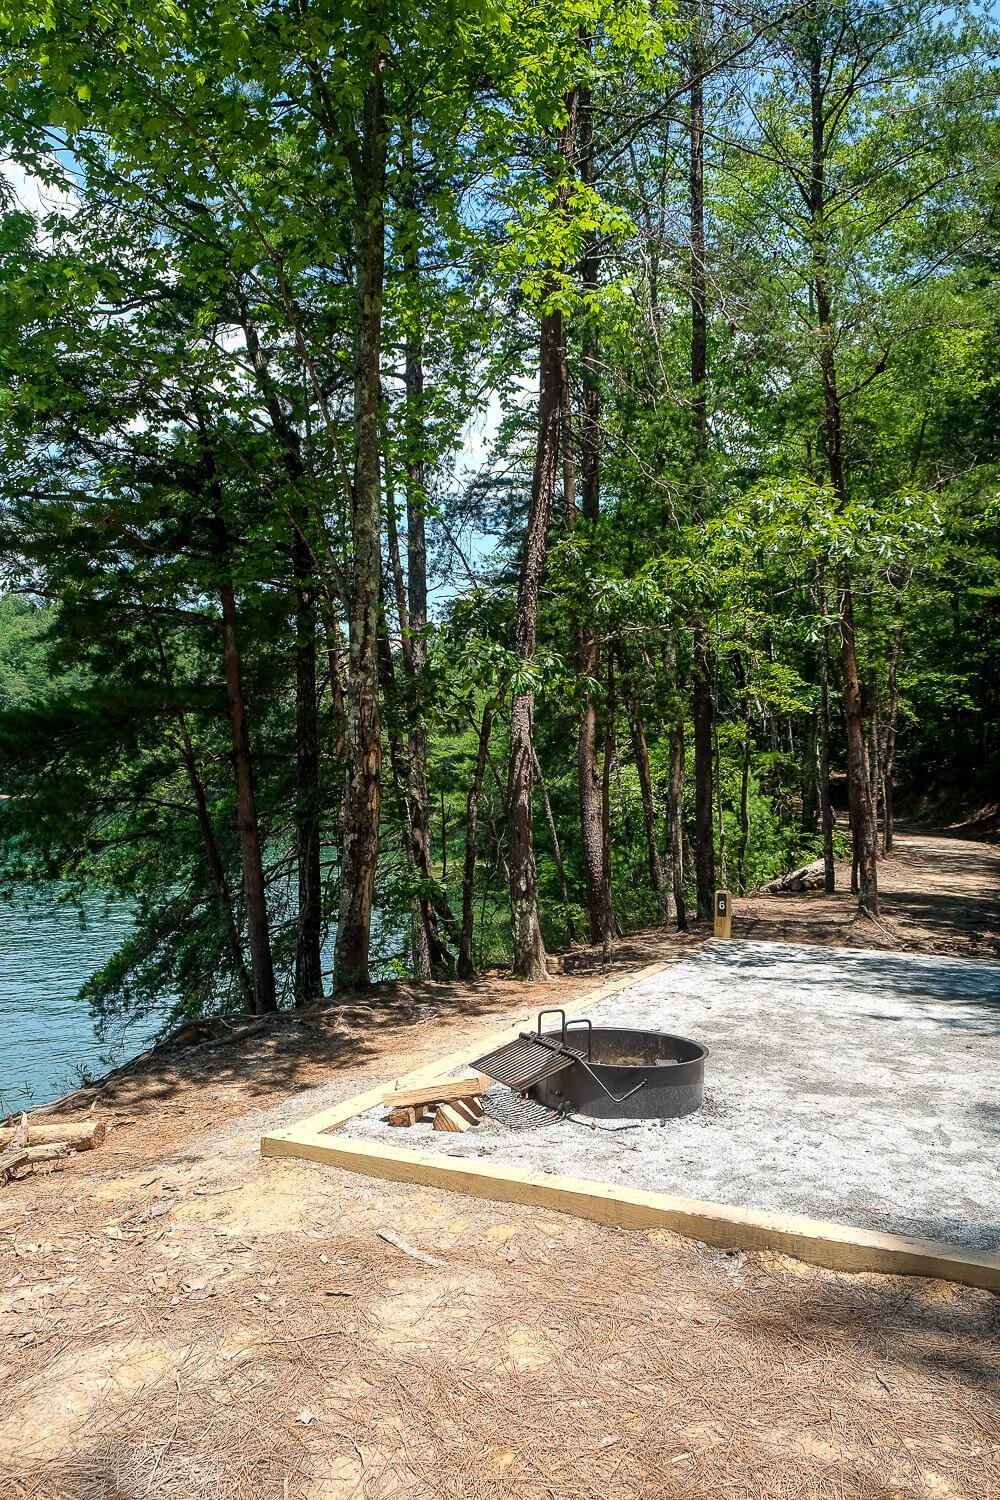 site 6 Boat in campsites at lake jocassee